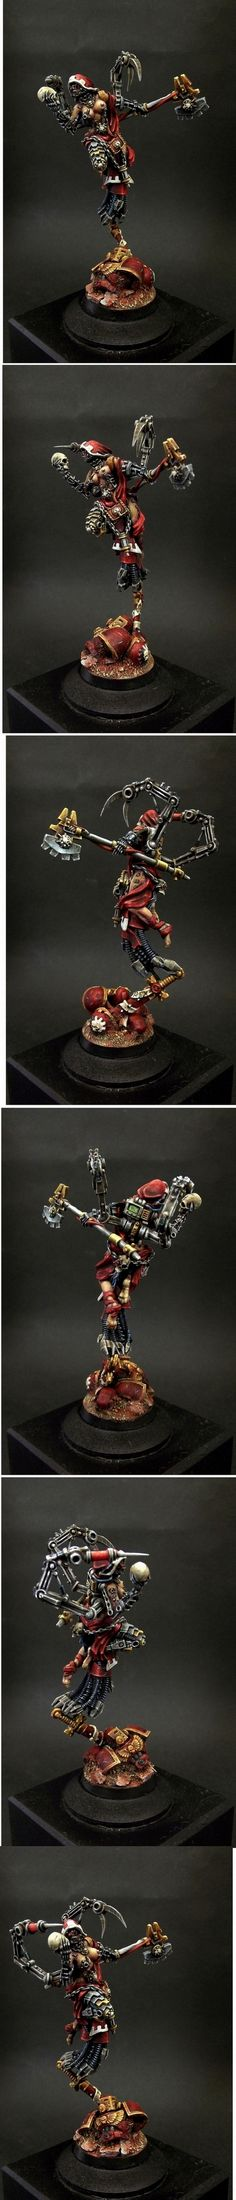 MECHANIC FEMALE ADEPT TECH PRIEST WITH AXE 48MM